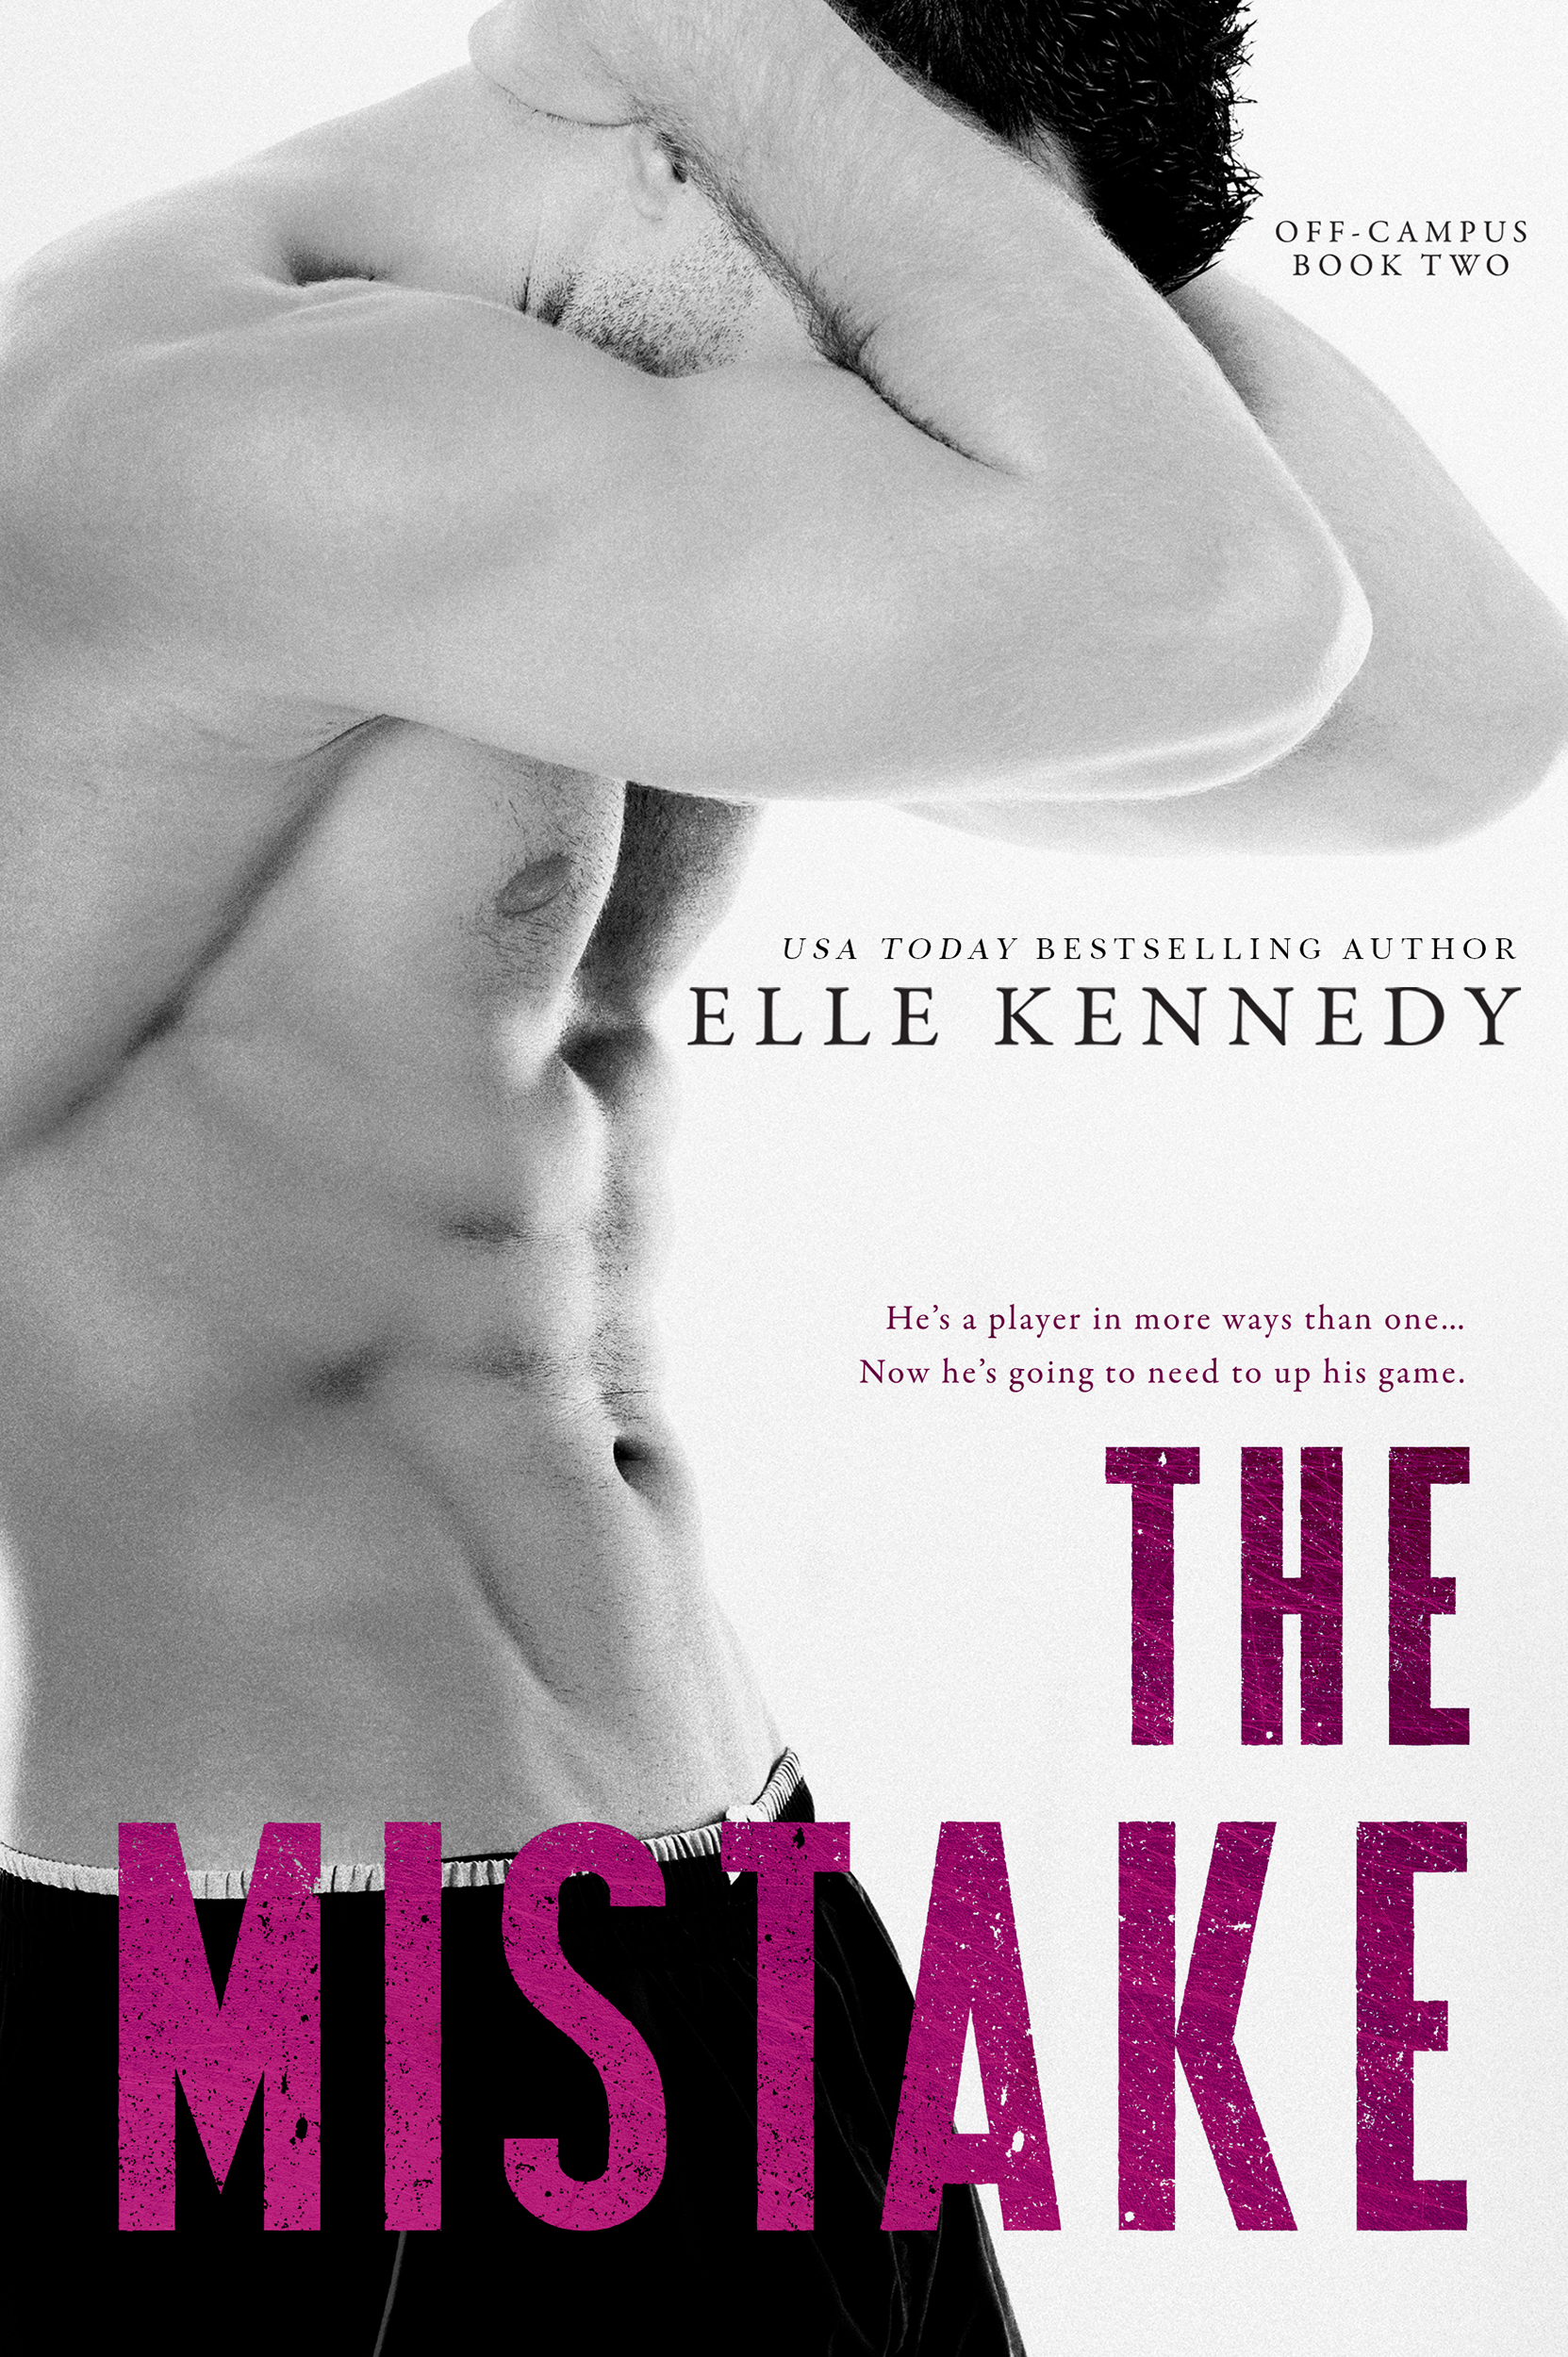 Cover Reveal: The Mistake (Off-Campus #2) by Elle Kennedy